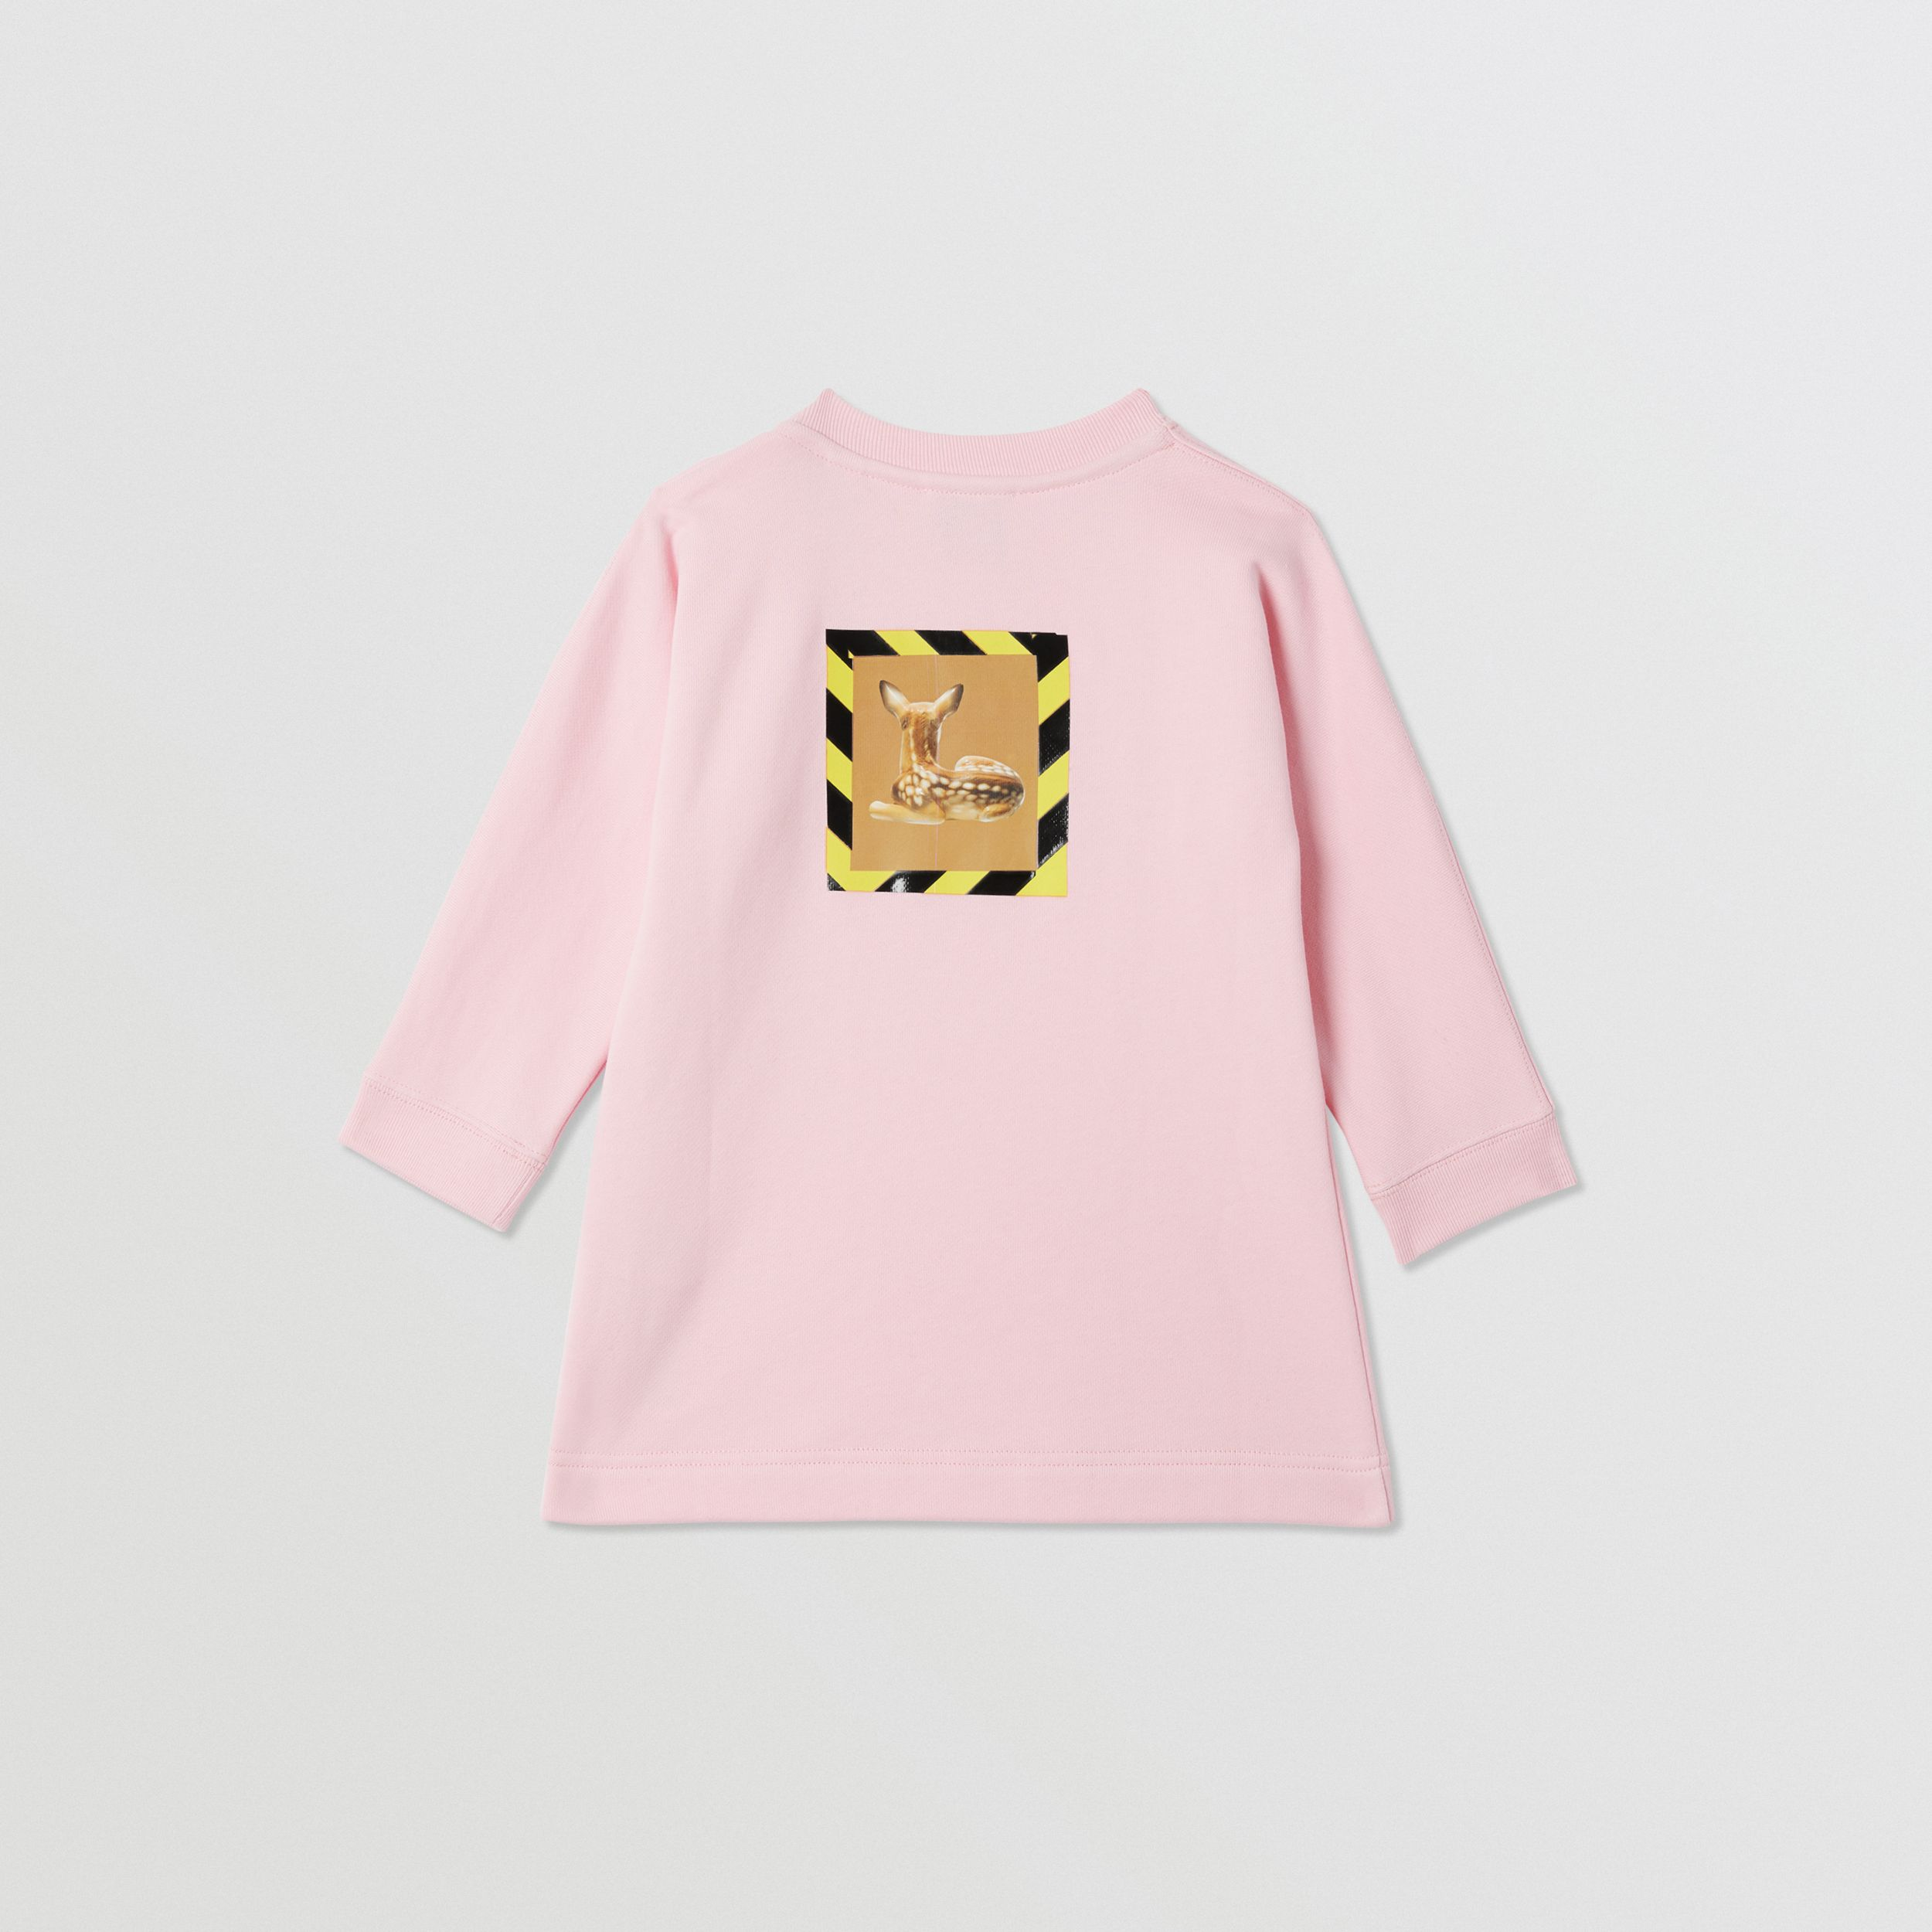 Deer Print Cotton Sweater Dress in Candy Pink - Children | Burberry - 4